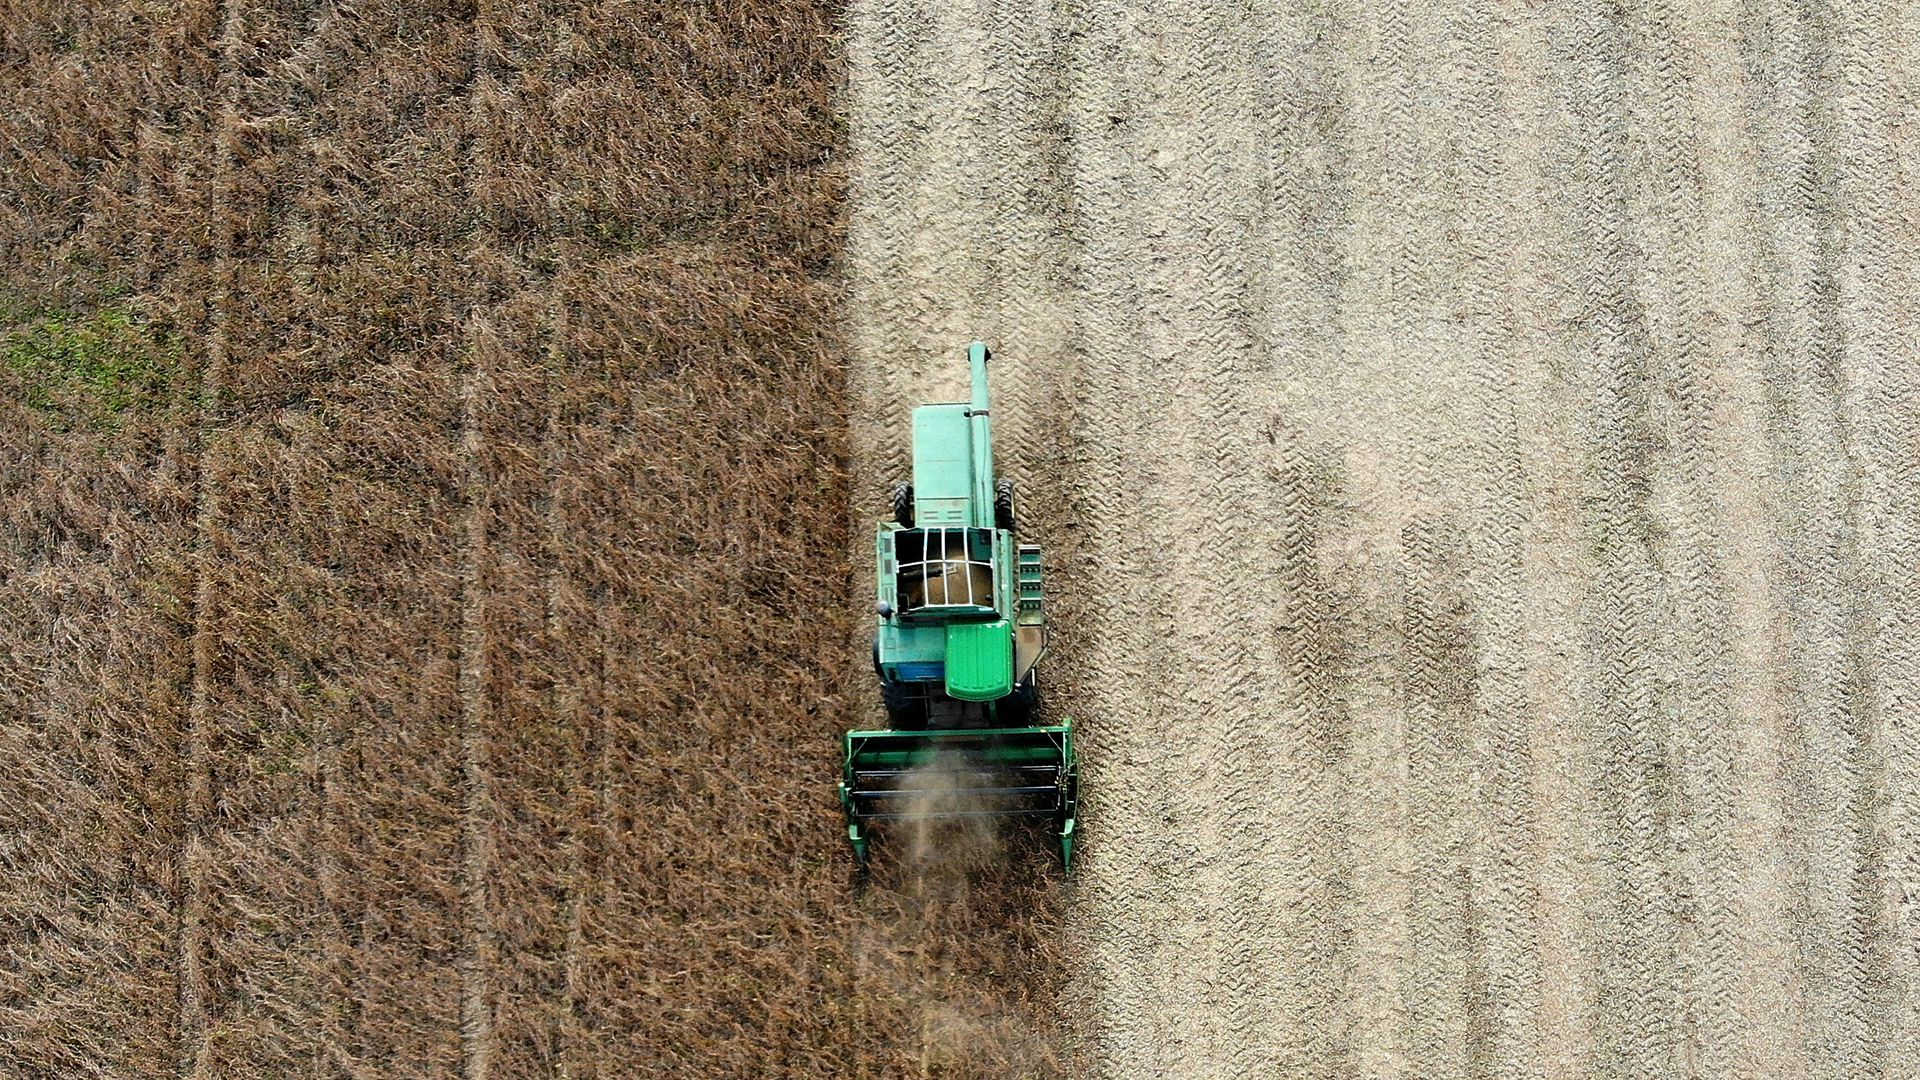 John Deere truck seen from above.